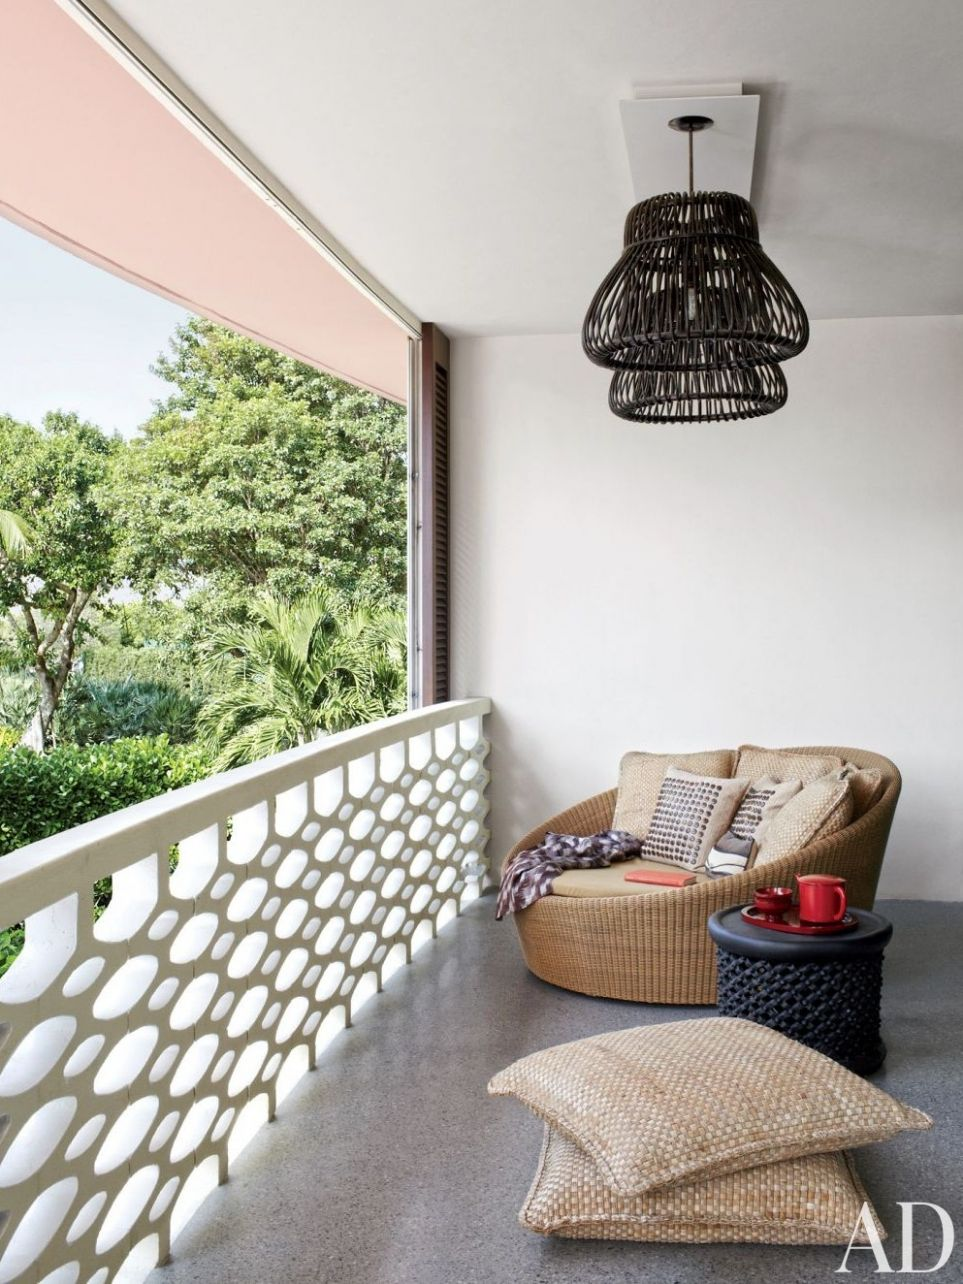 11 Cozy Balcony Ideas and Decor Inspiration | Architectural Digest - balcony sit out ideas